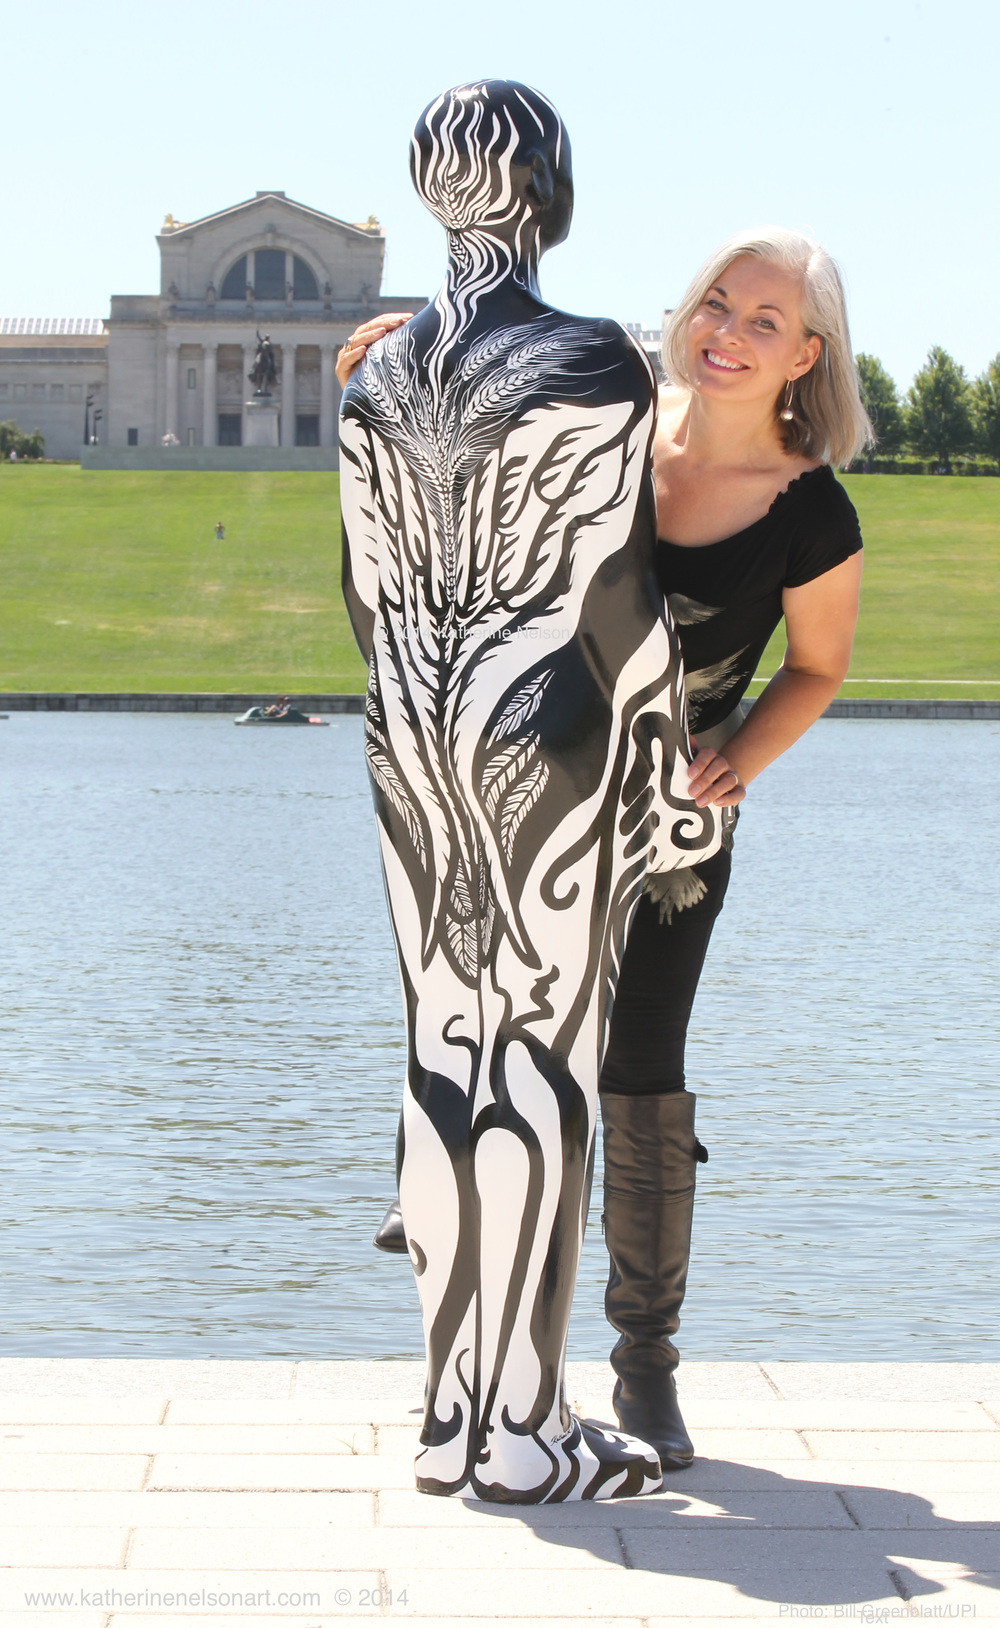 KNelson2backWGUPI copy.jpg